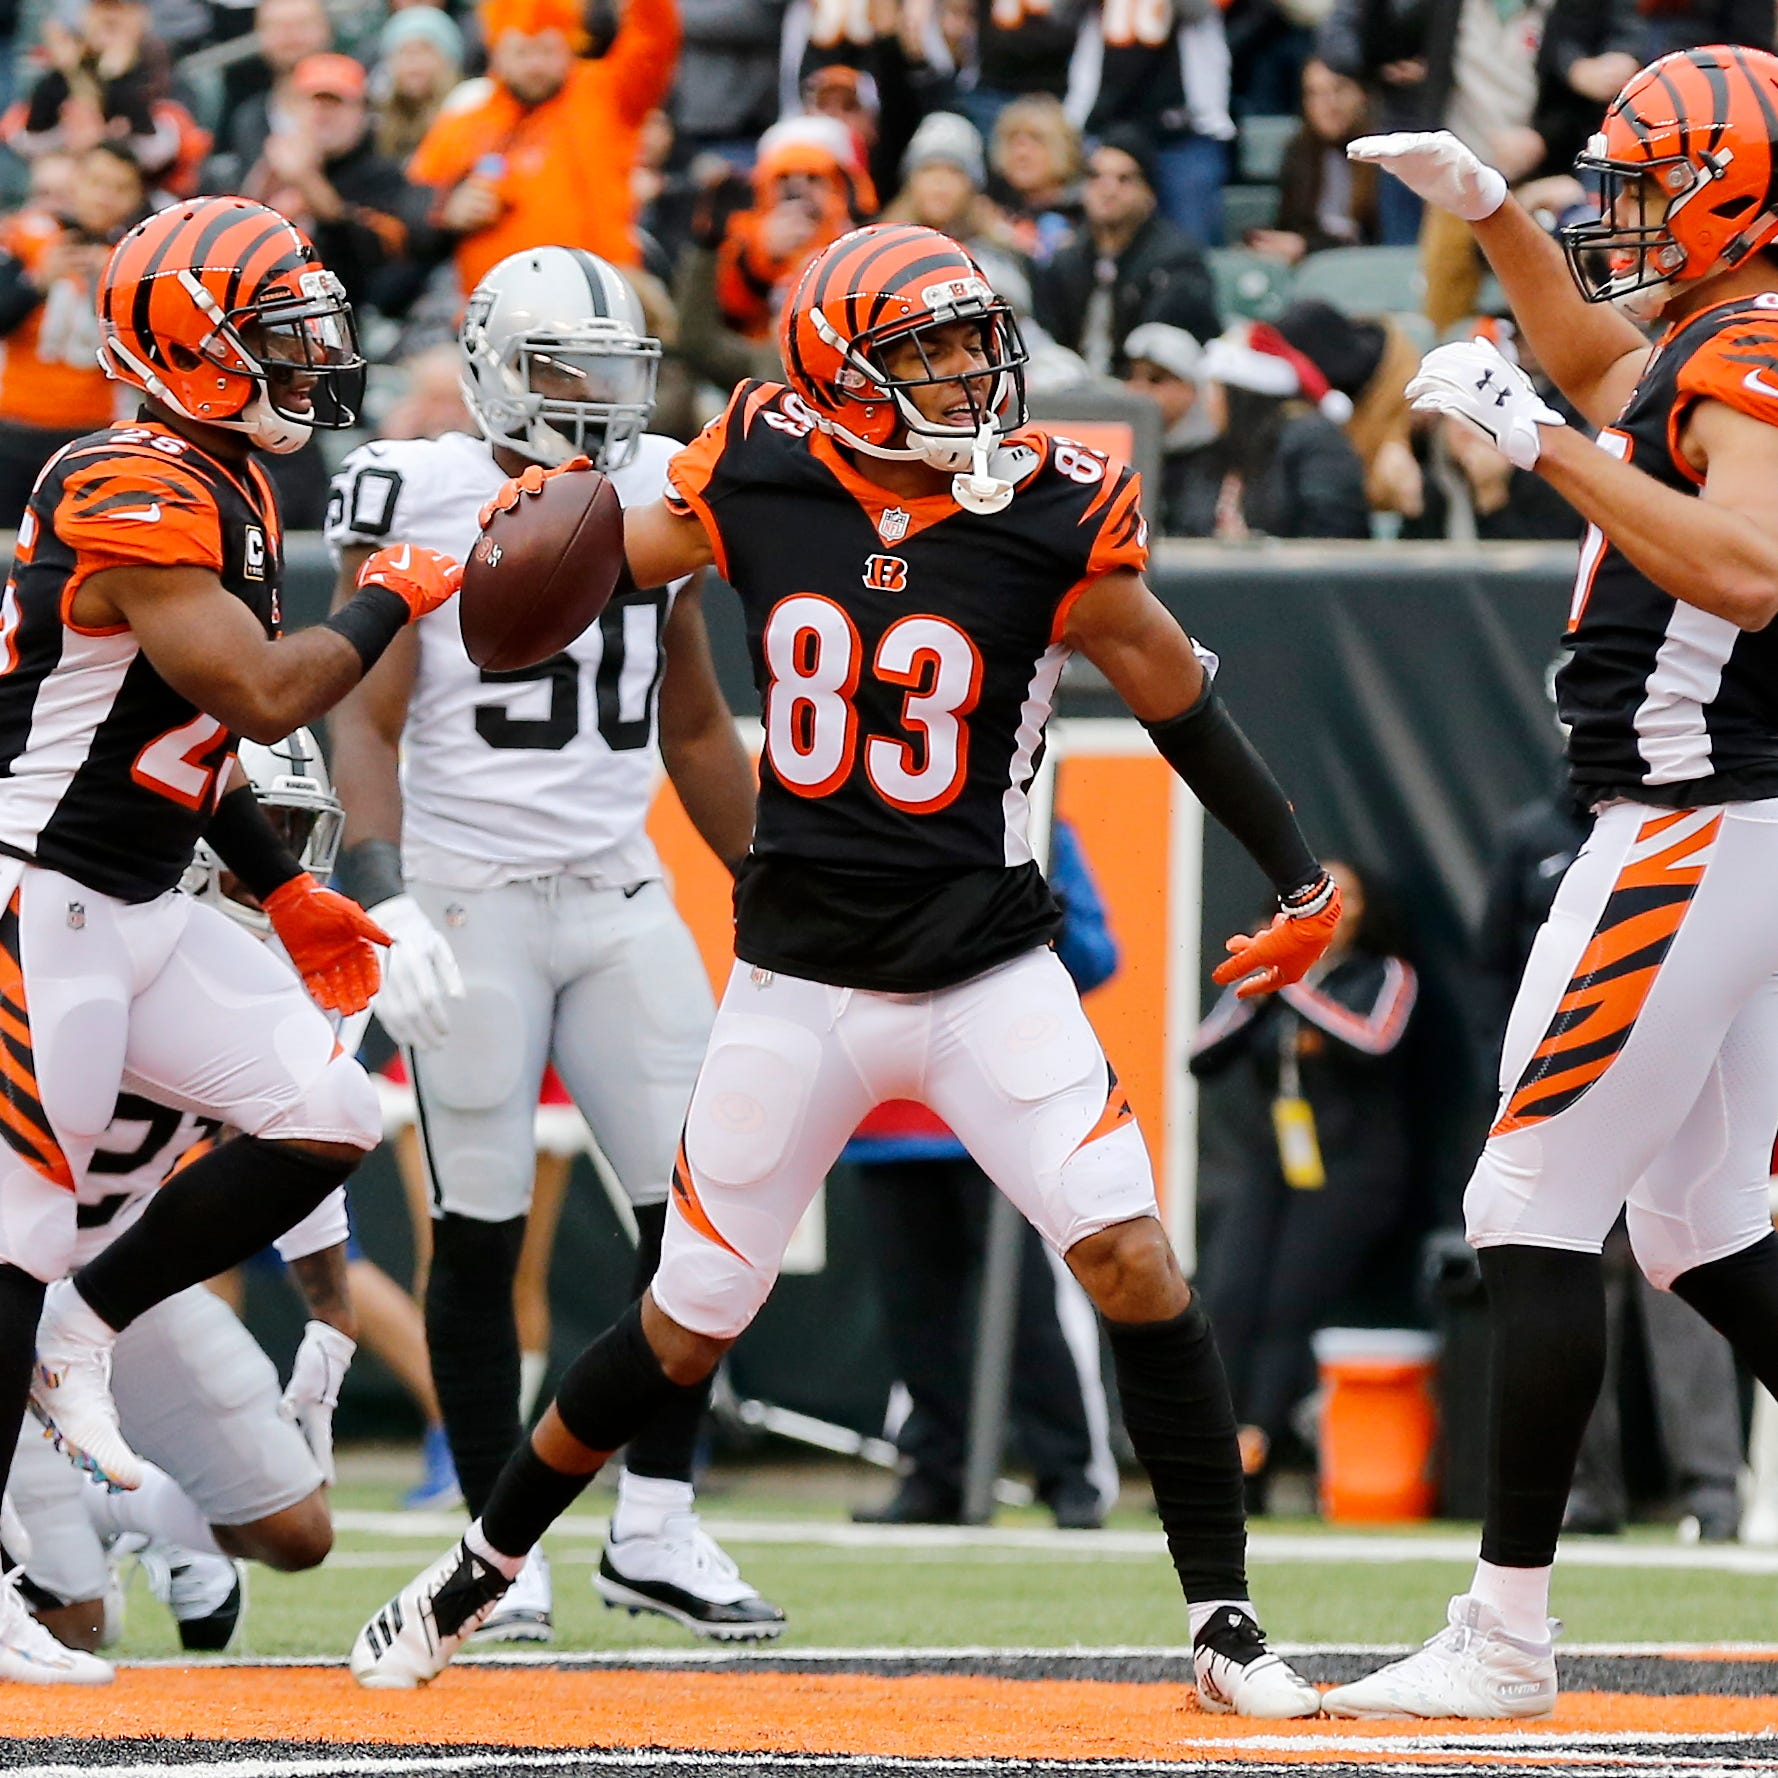 Cincinnati Bengals report: Tyler Boyd injury could be season-ending